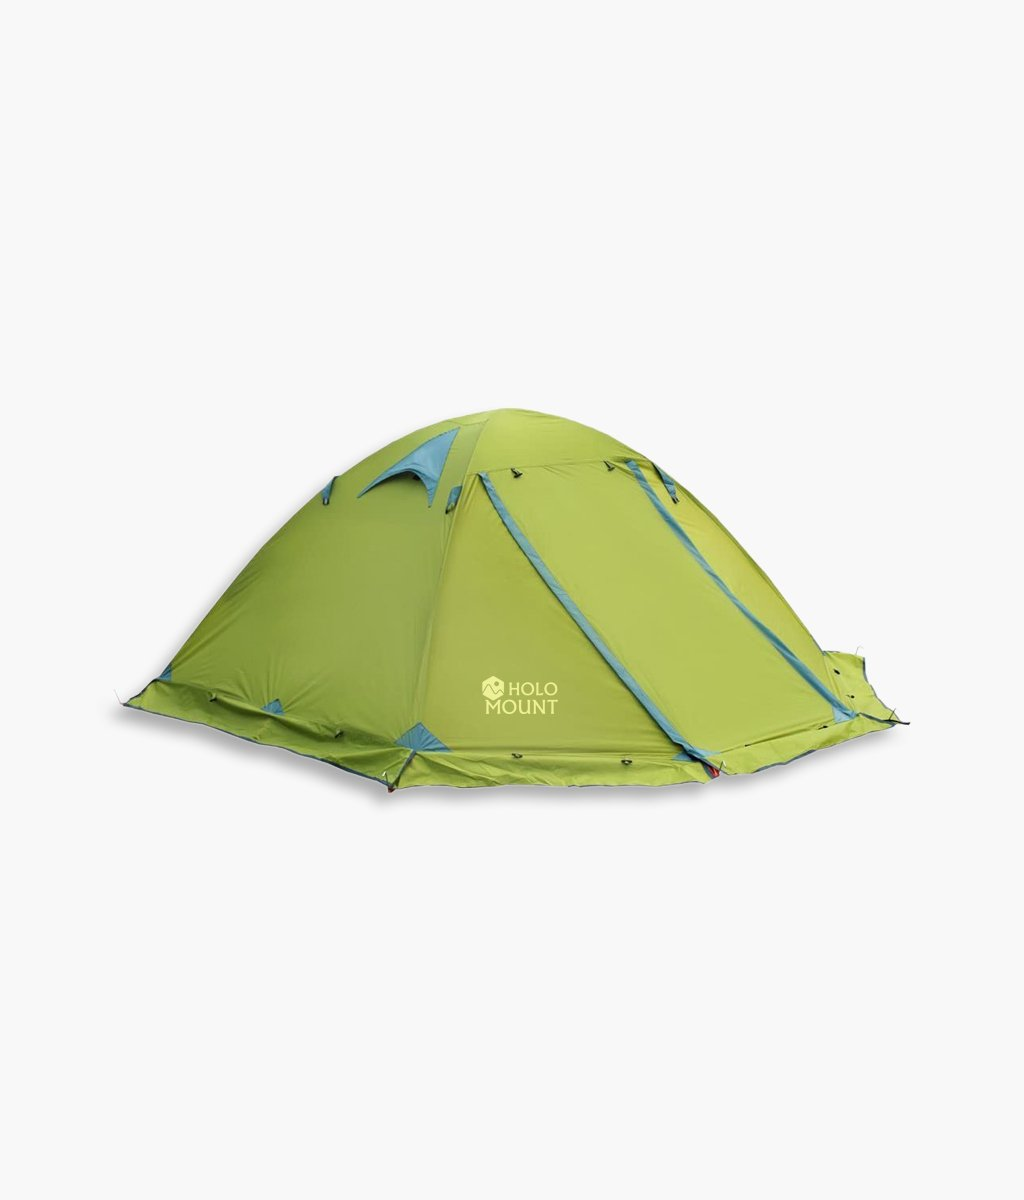 Backpacking Tent for 1-2 Person